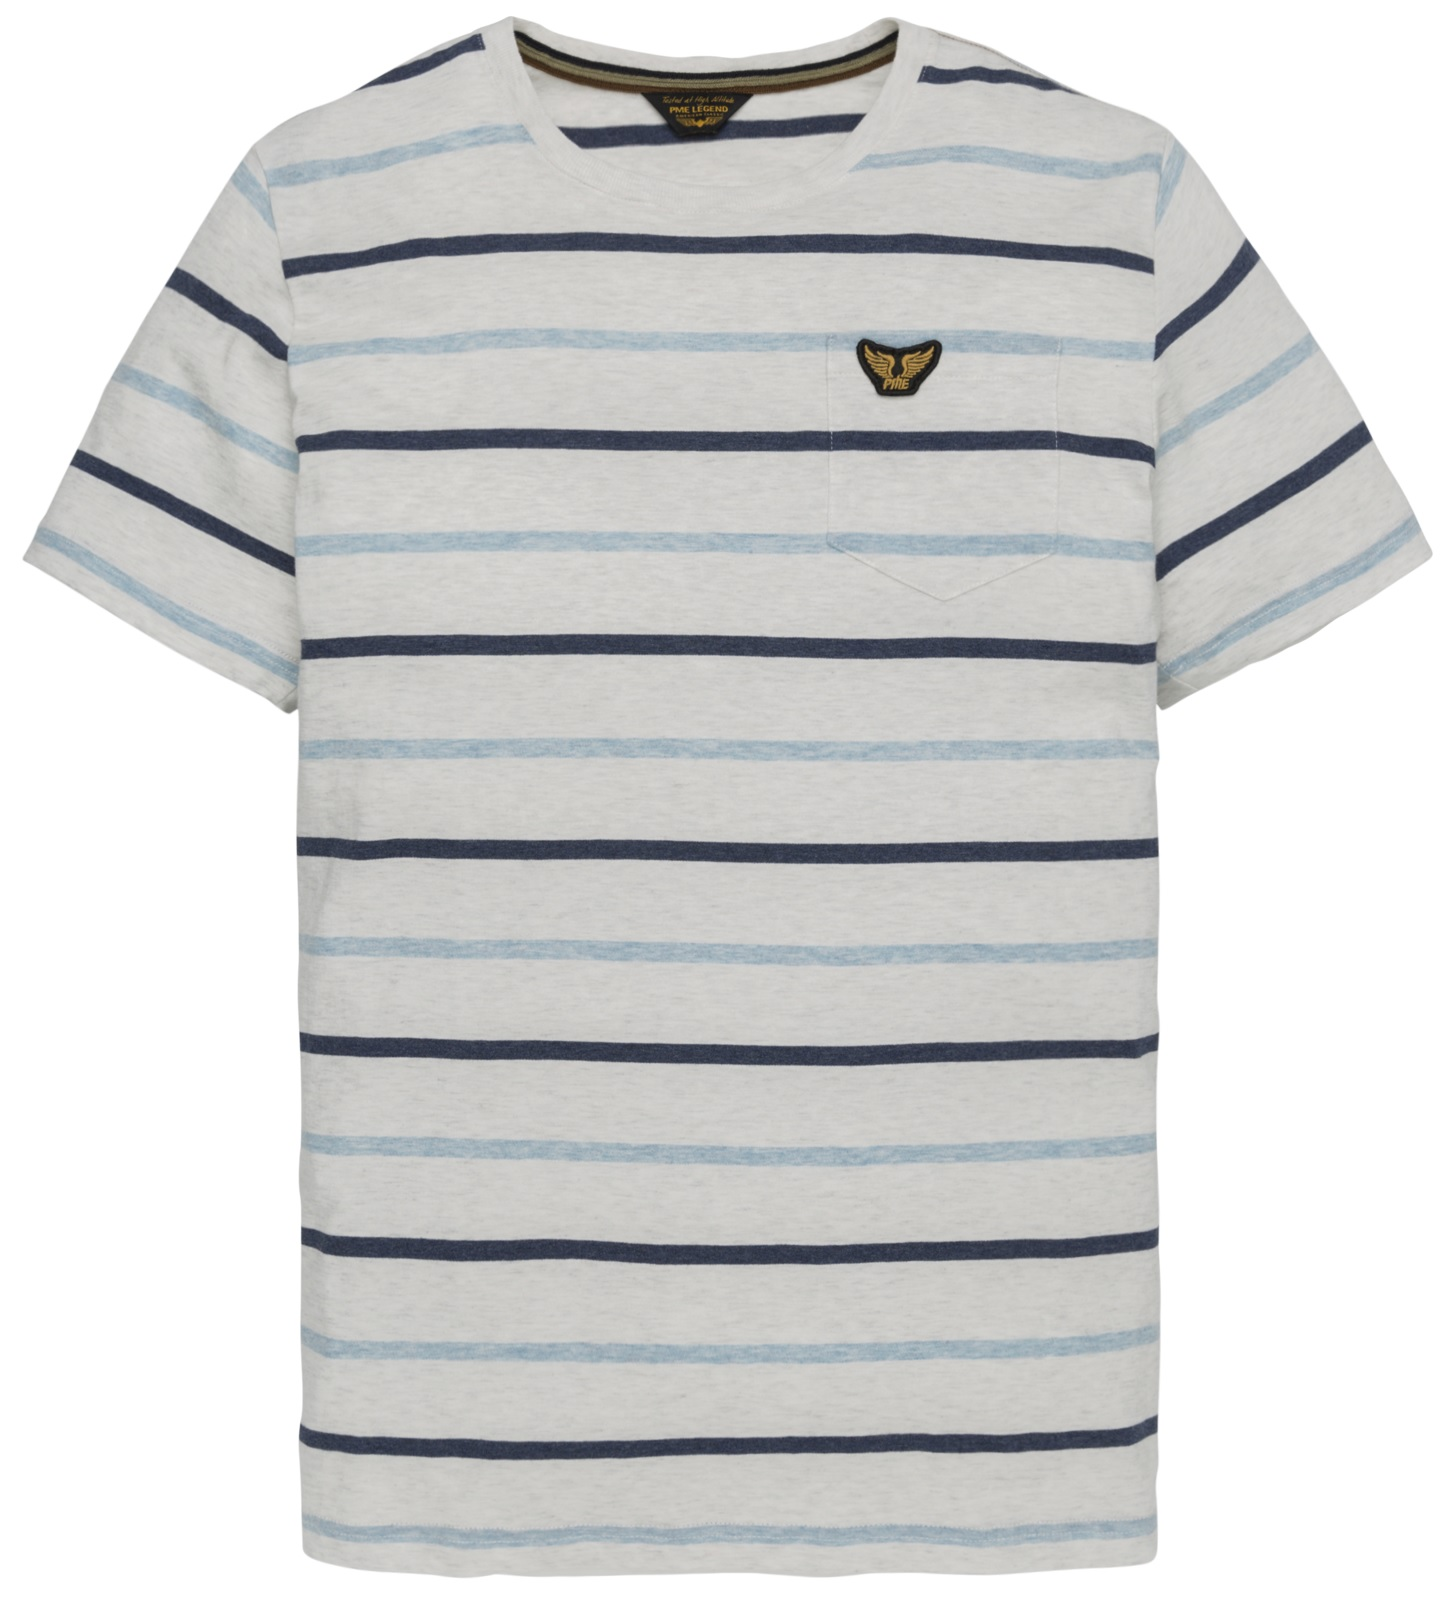 PME Legend Short sleeve r-neck yd striped PTSS194538 7003